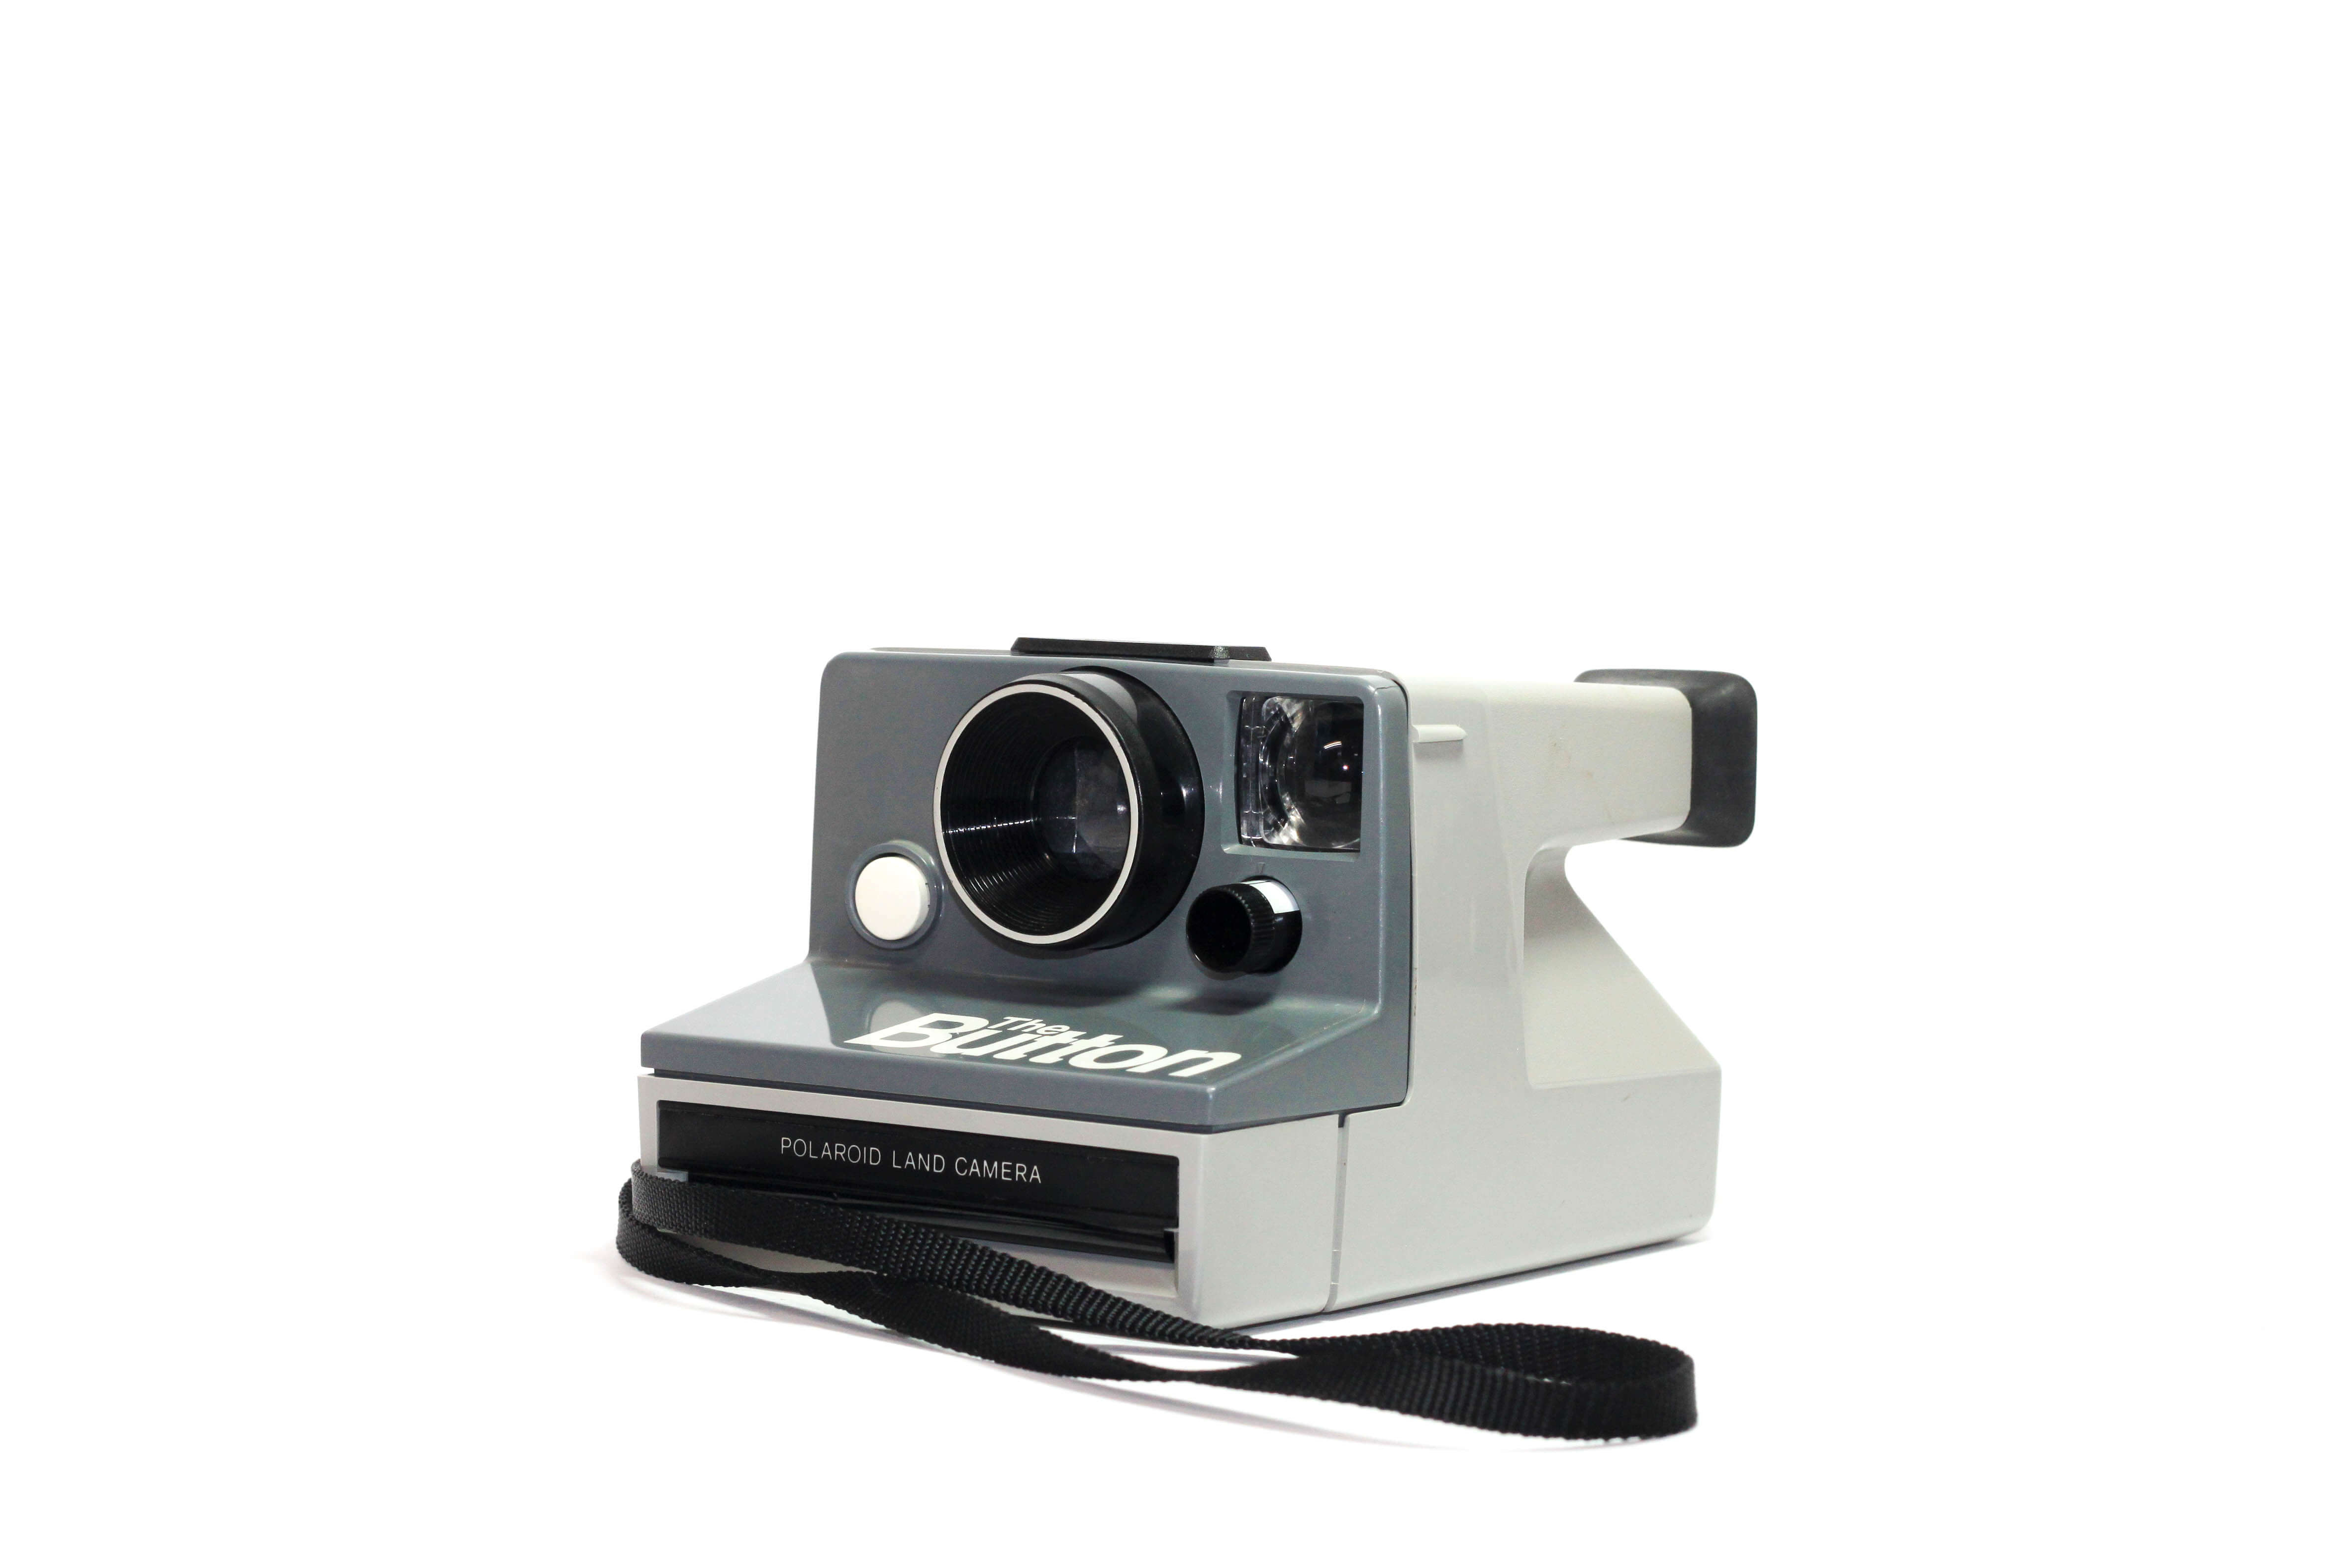 Polaroid Camera the button